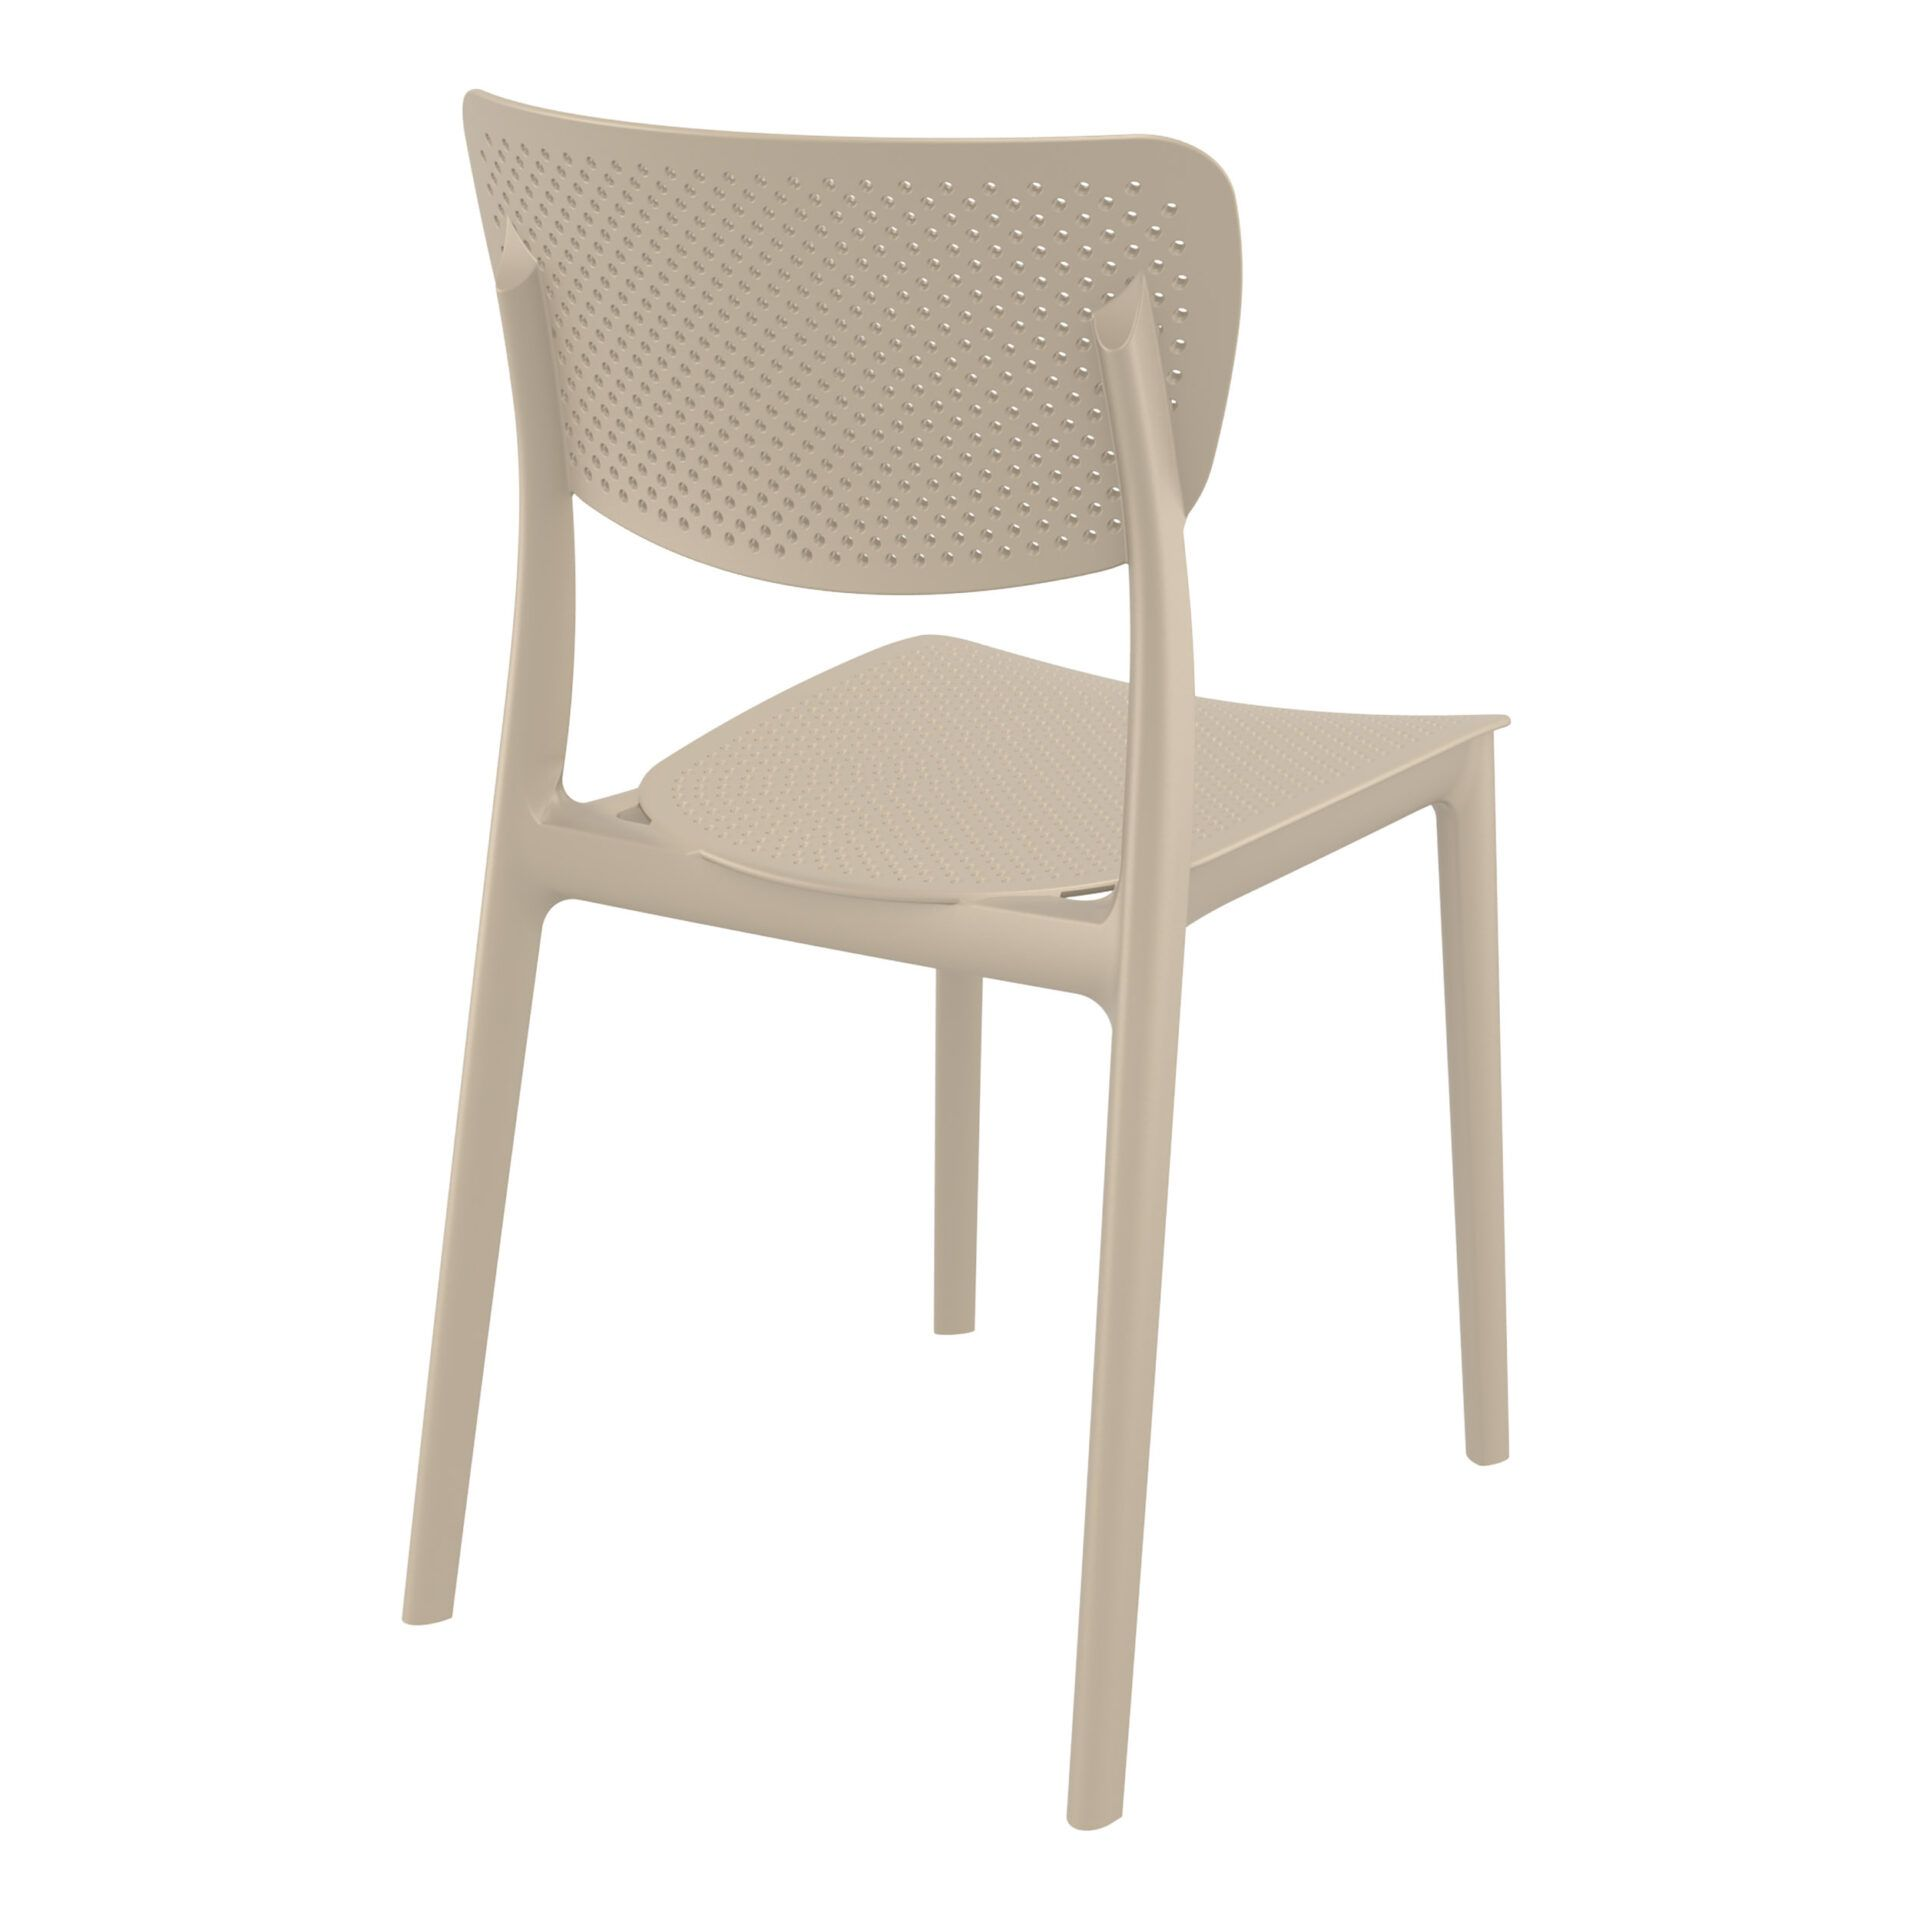 polypropylene hospitality seating lucy chair taupe back side